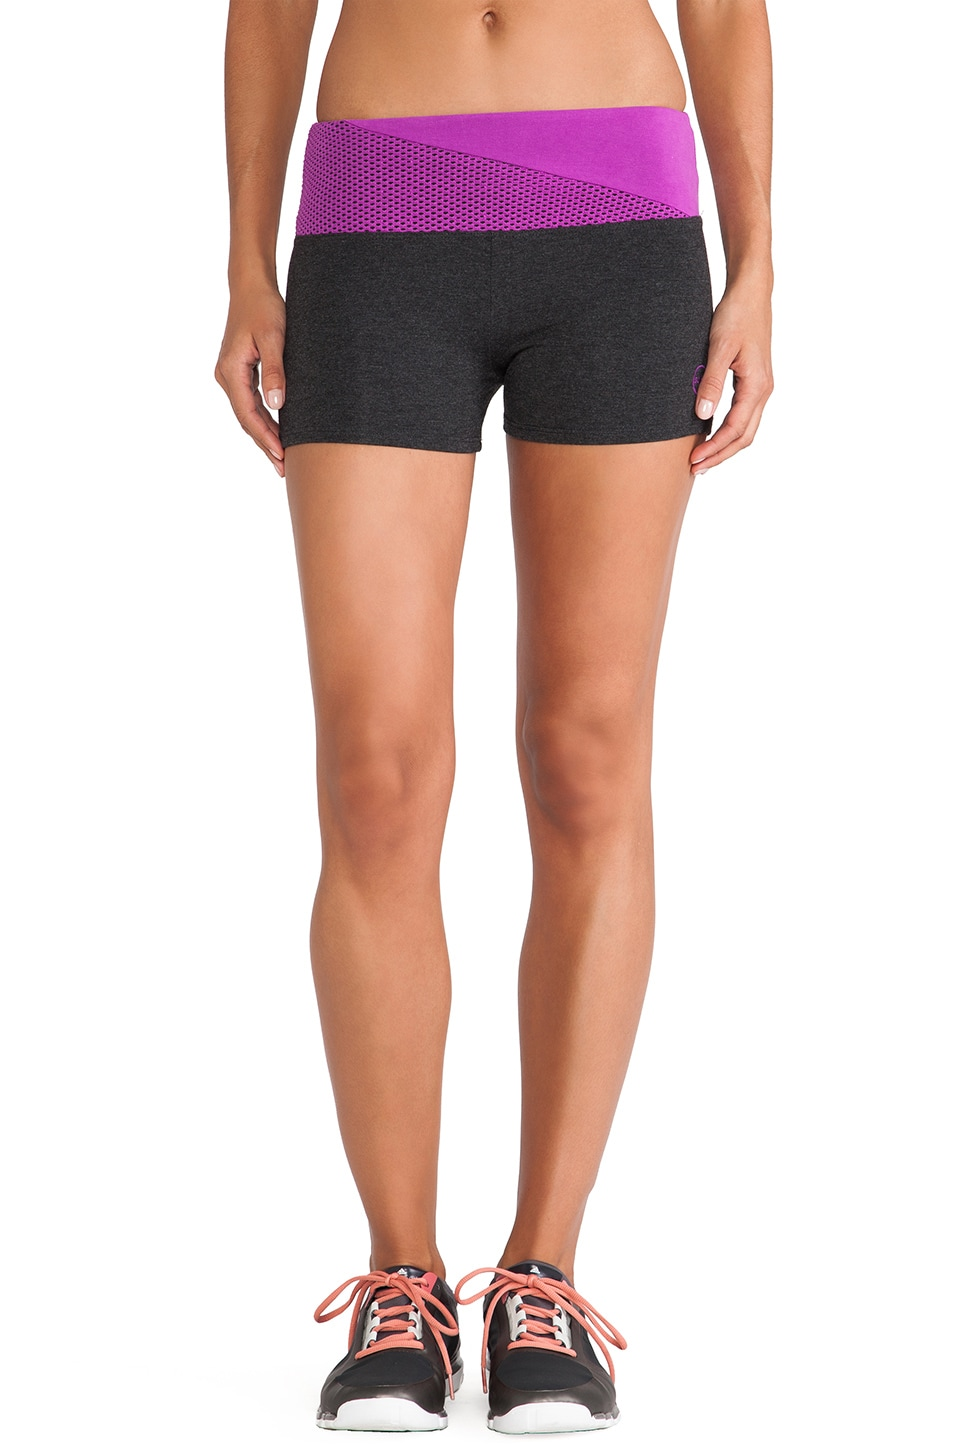 SOLOW Contrast Mesh Booty Short in Heather Charcoal & Vixen